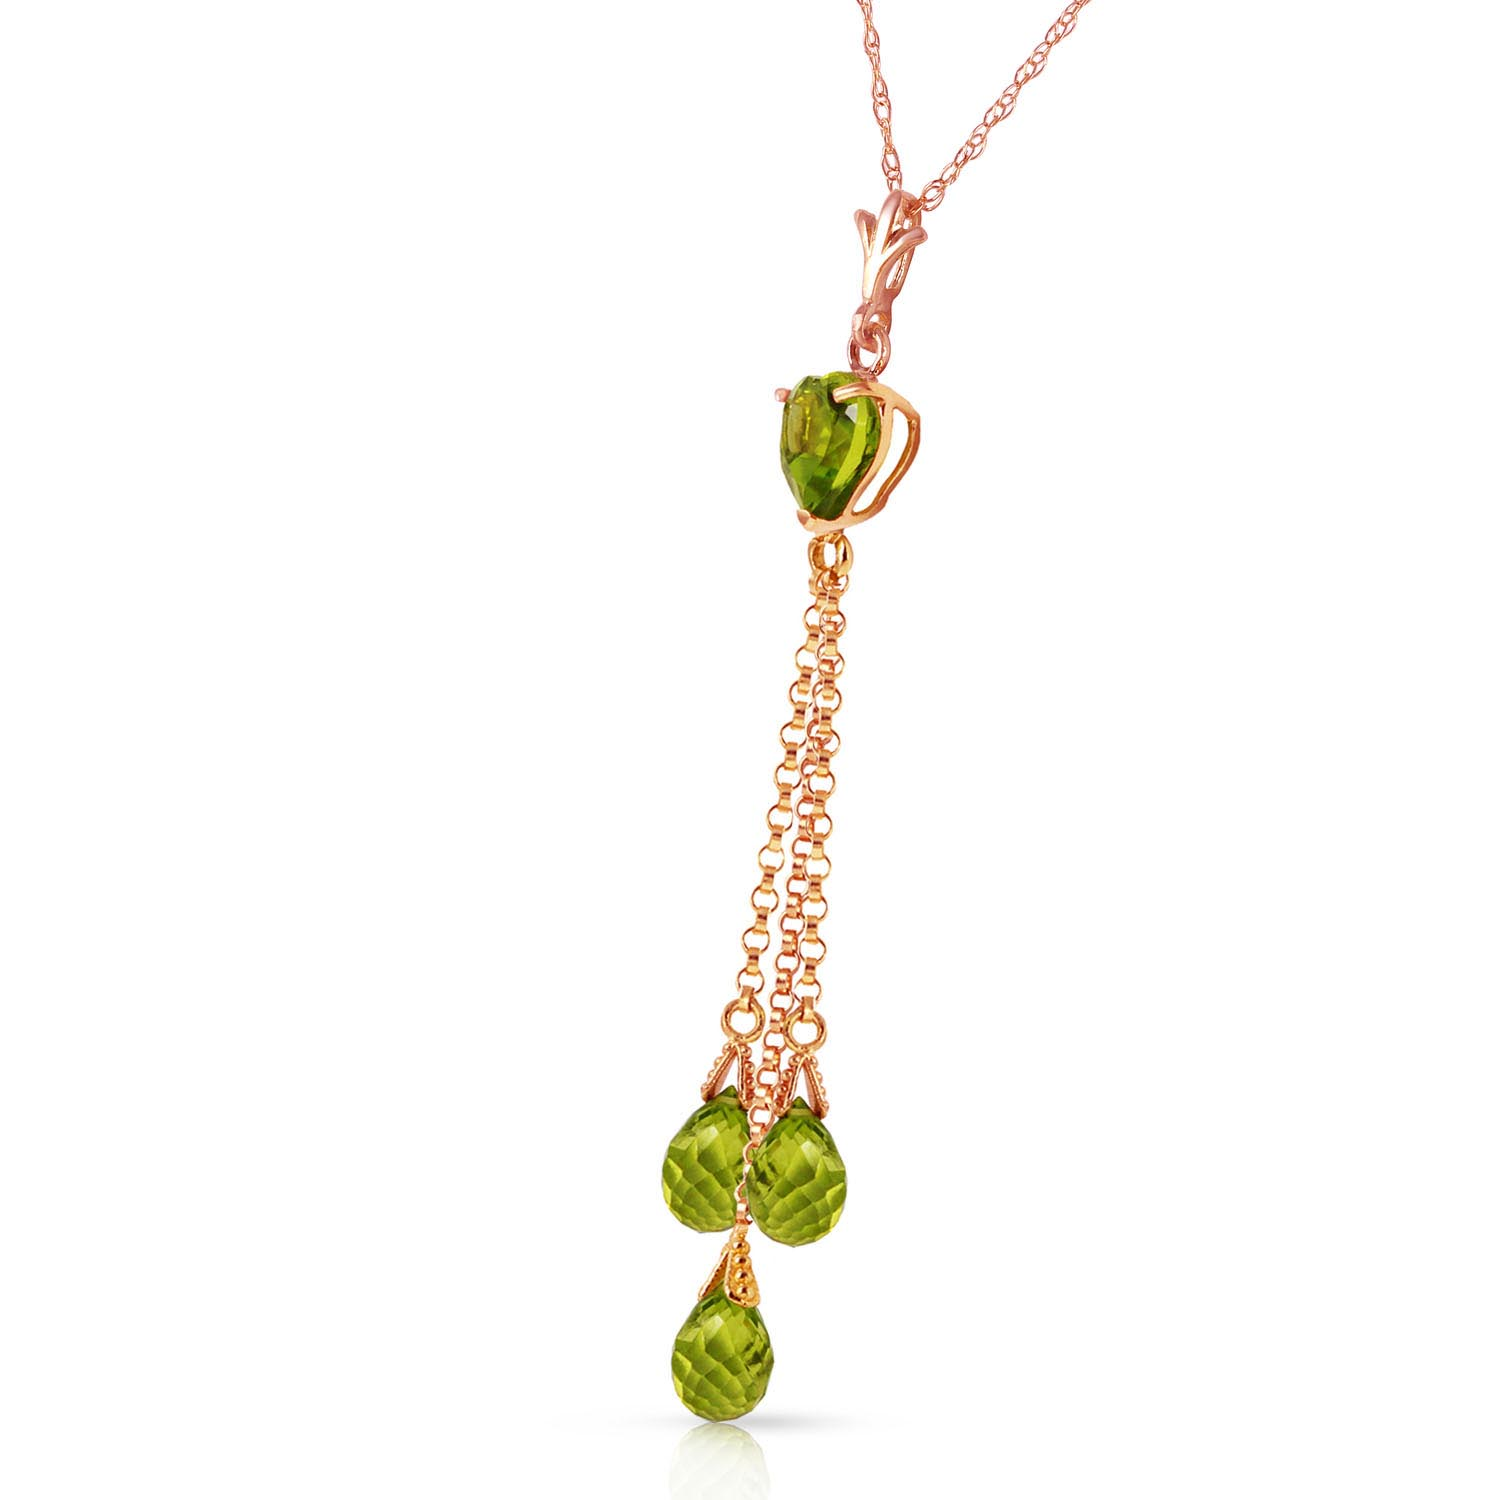 Peridot Comet Tail Heart Pendant Necklace 4.75ctw in 9ct Rose Gold